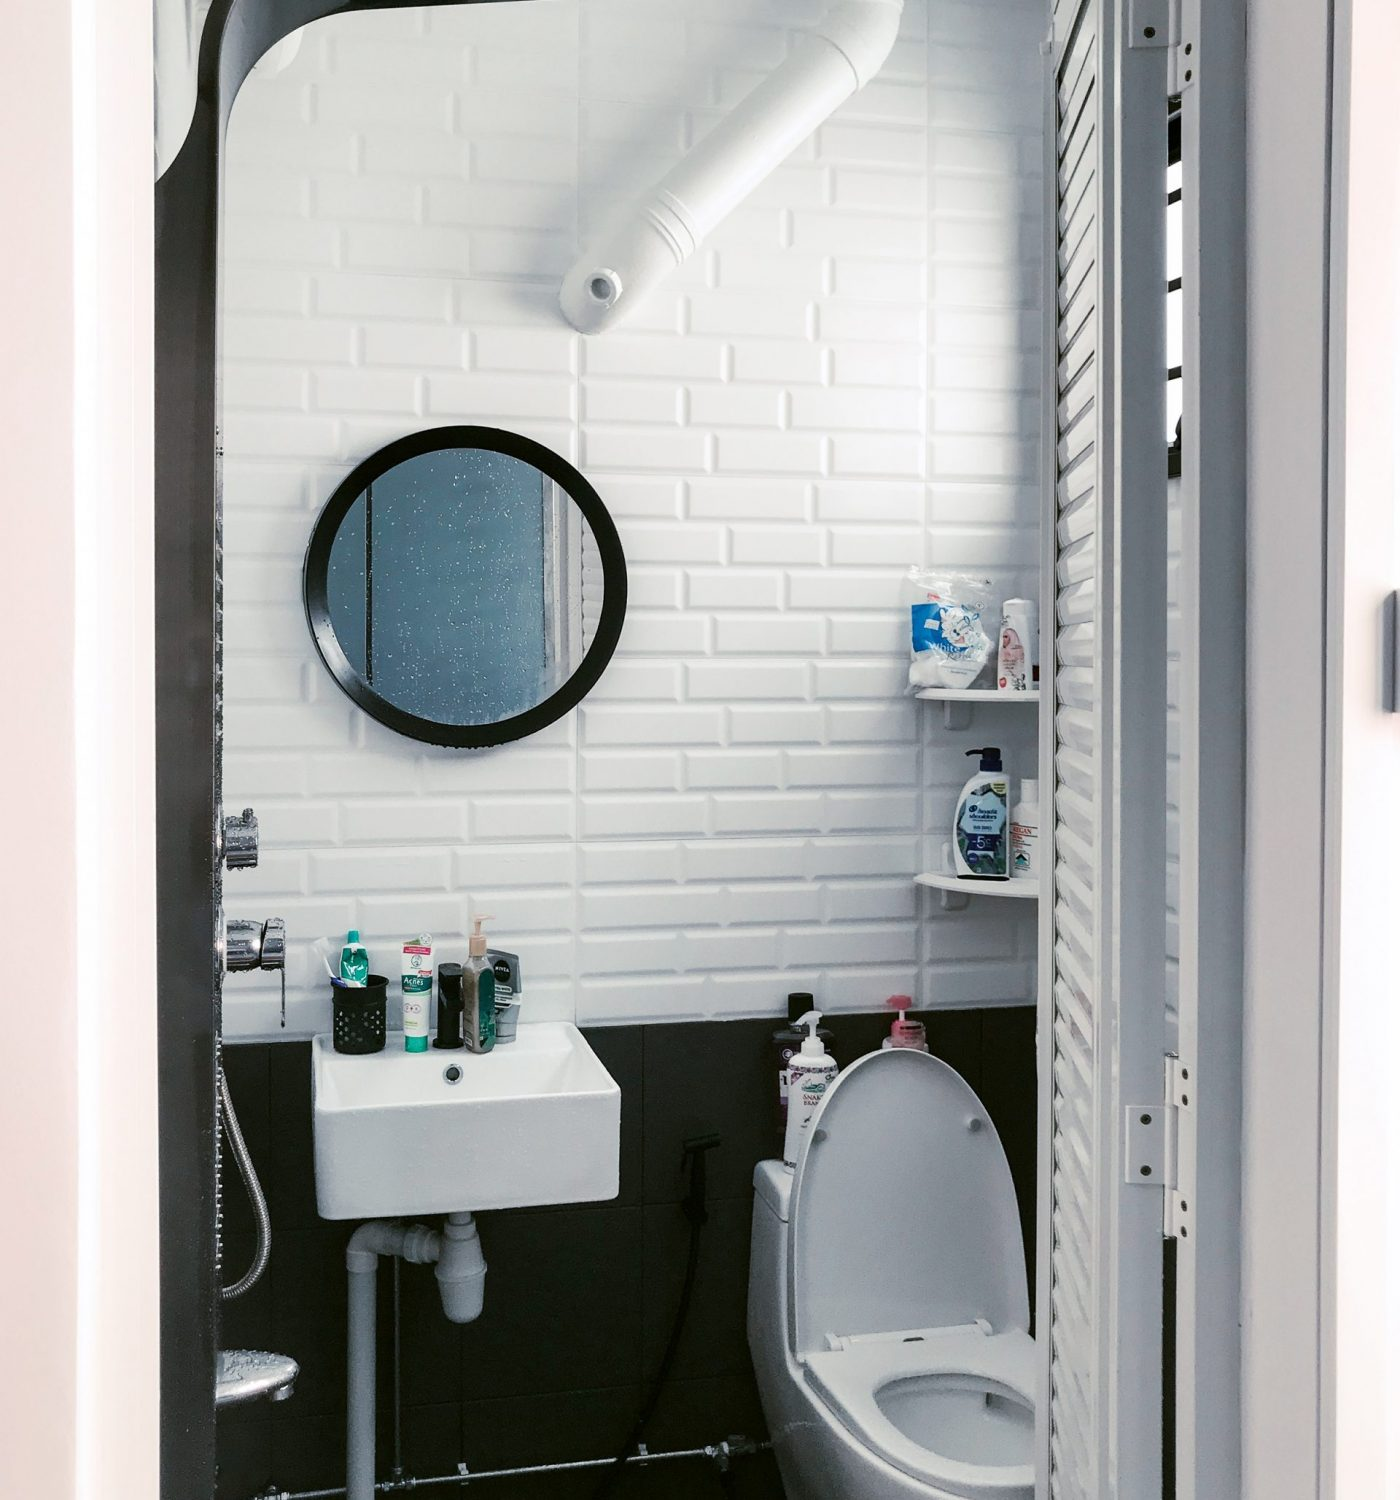 BY DESIGN - 159 Simei Road Master Toilet